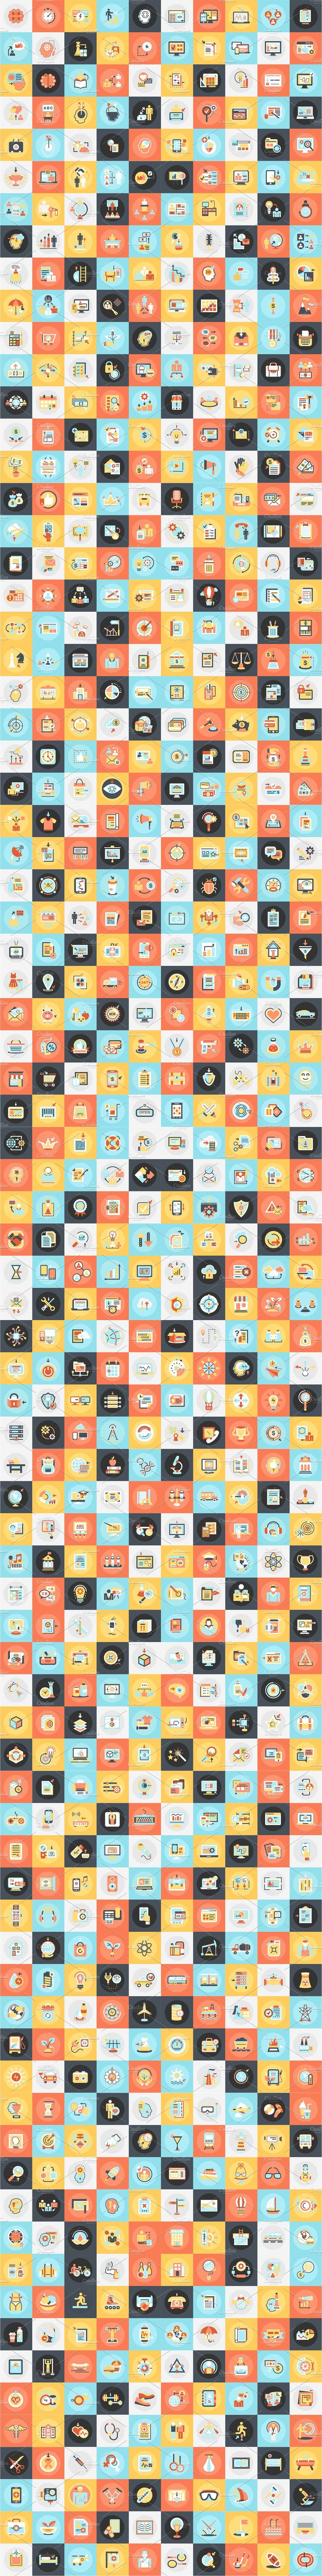 Healthcare-Advertising-Flat-Conceptual-Icons-icon-flaticon-icons-icon Healthcare Advertising : Flat Conceptual Icons icon, flaticon, icons, icon pack, icon pack free, the icon...